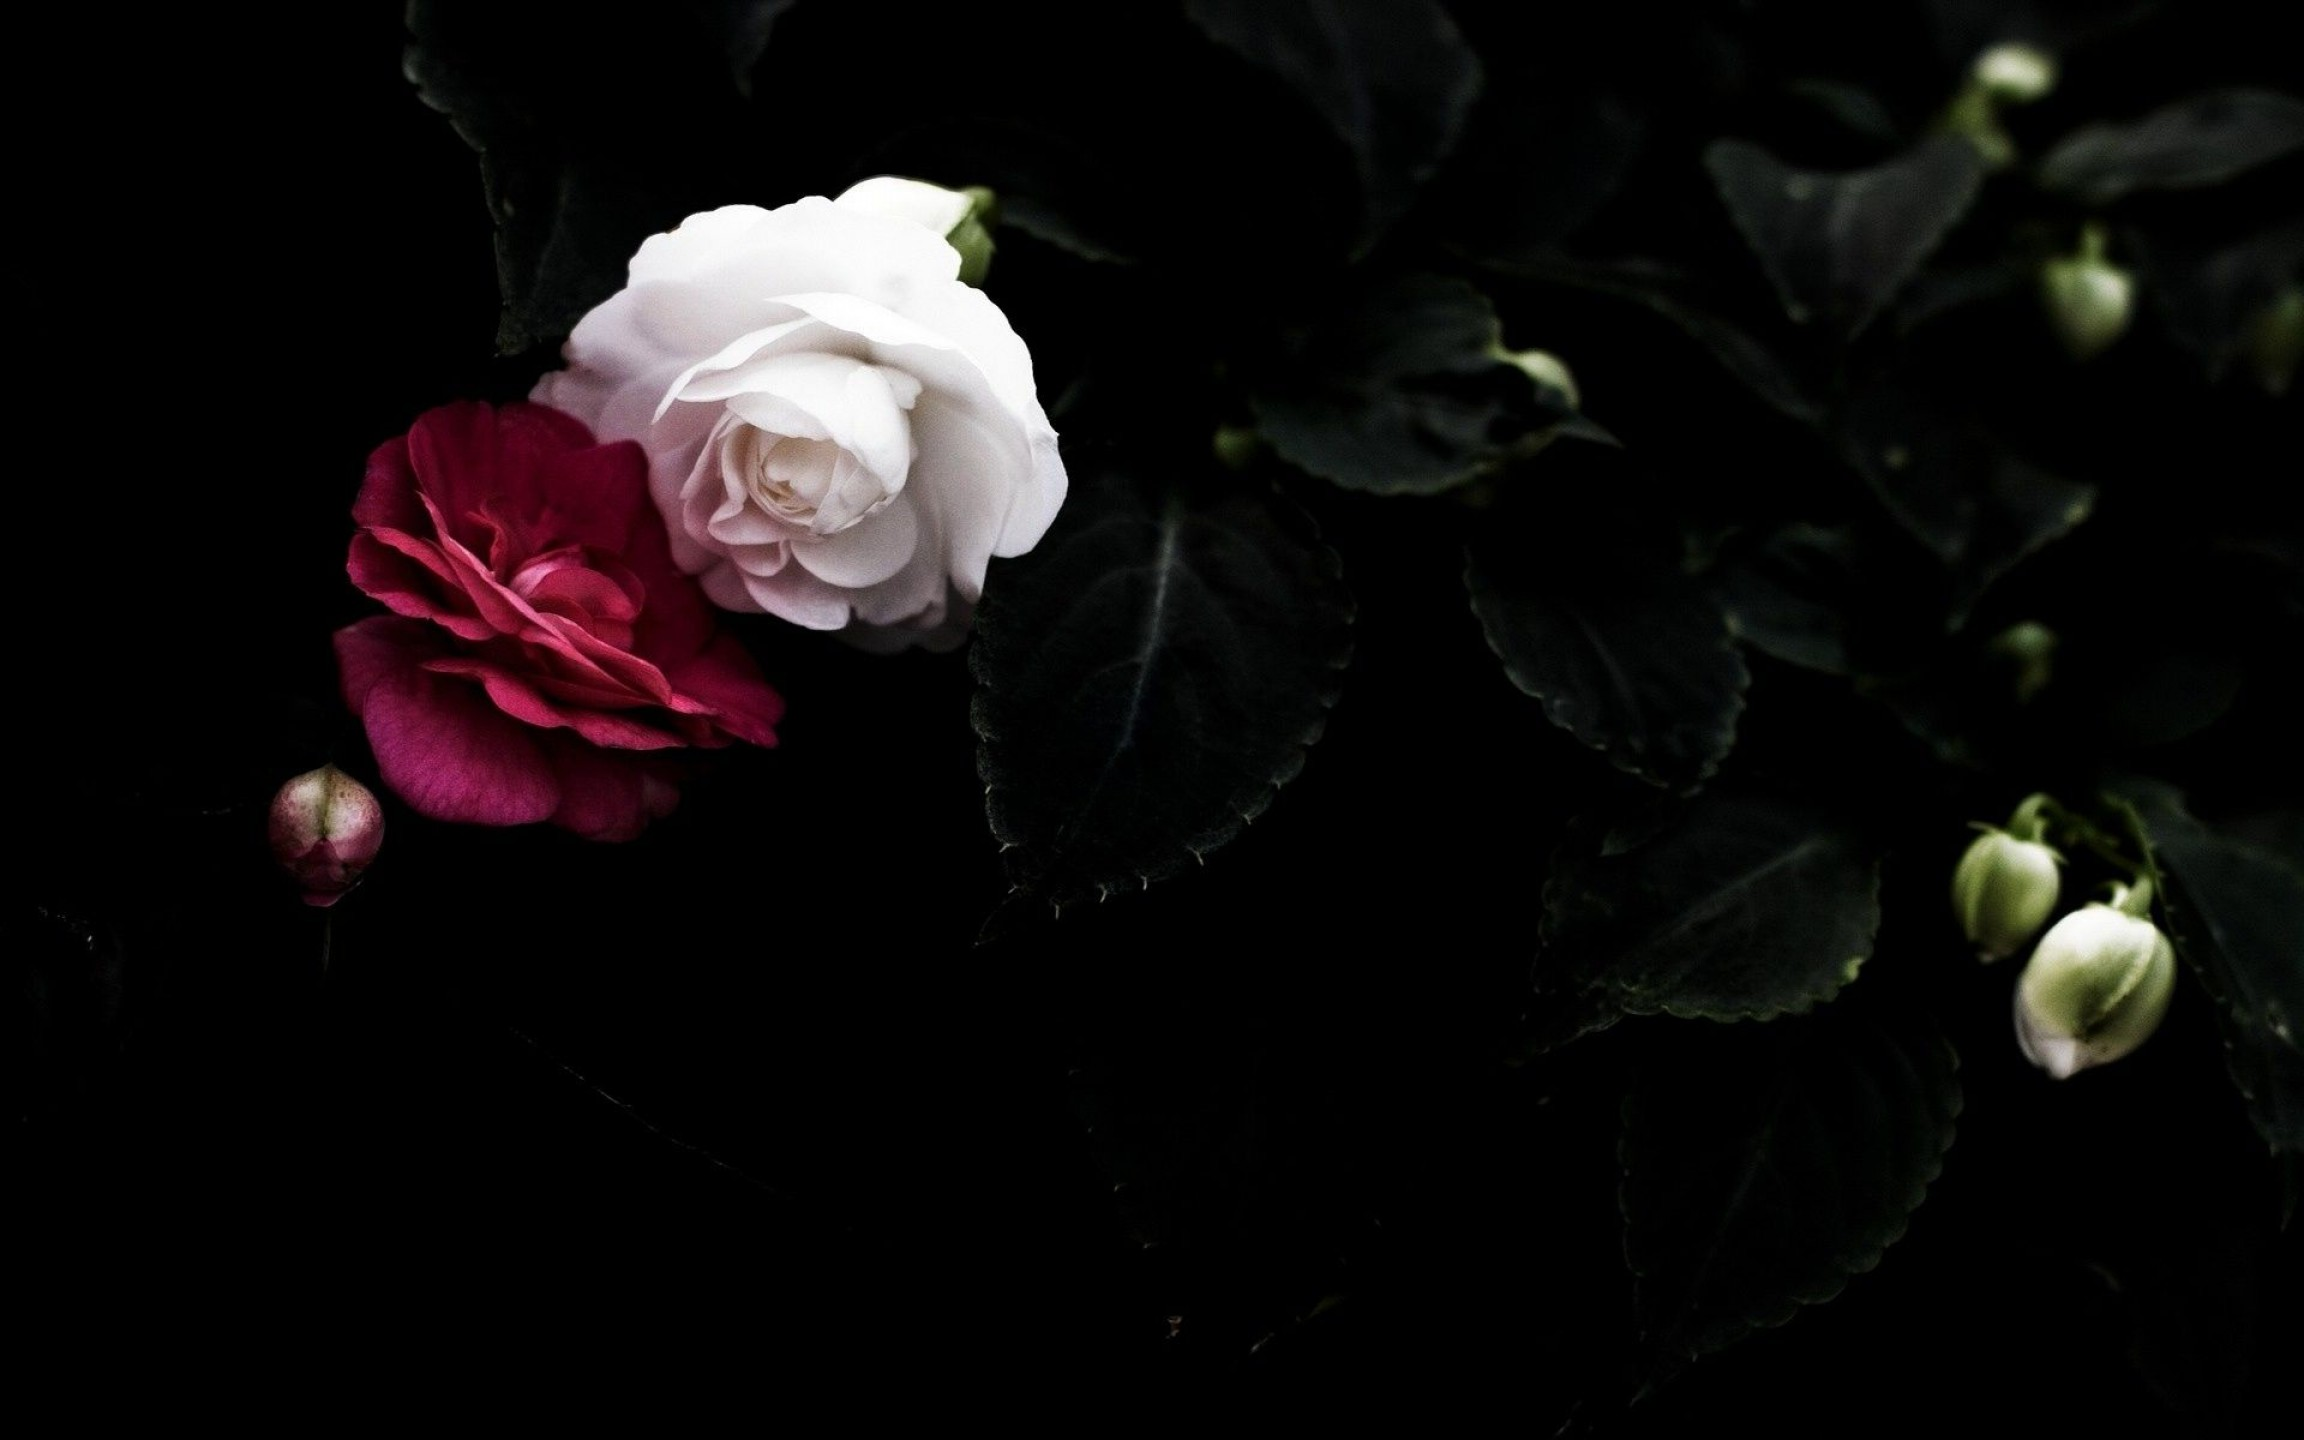 Black Flowers Wallpaper Posted By Zoey Tremblay